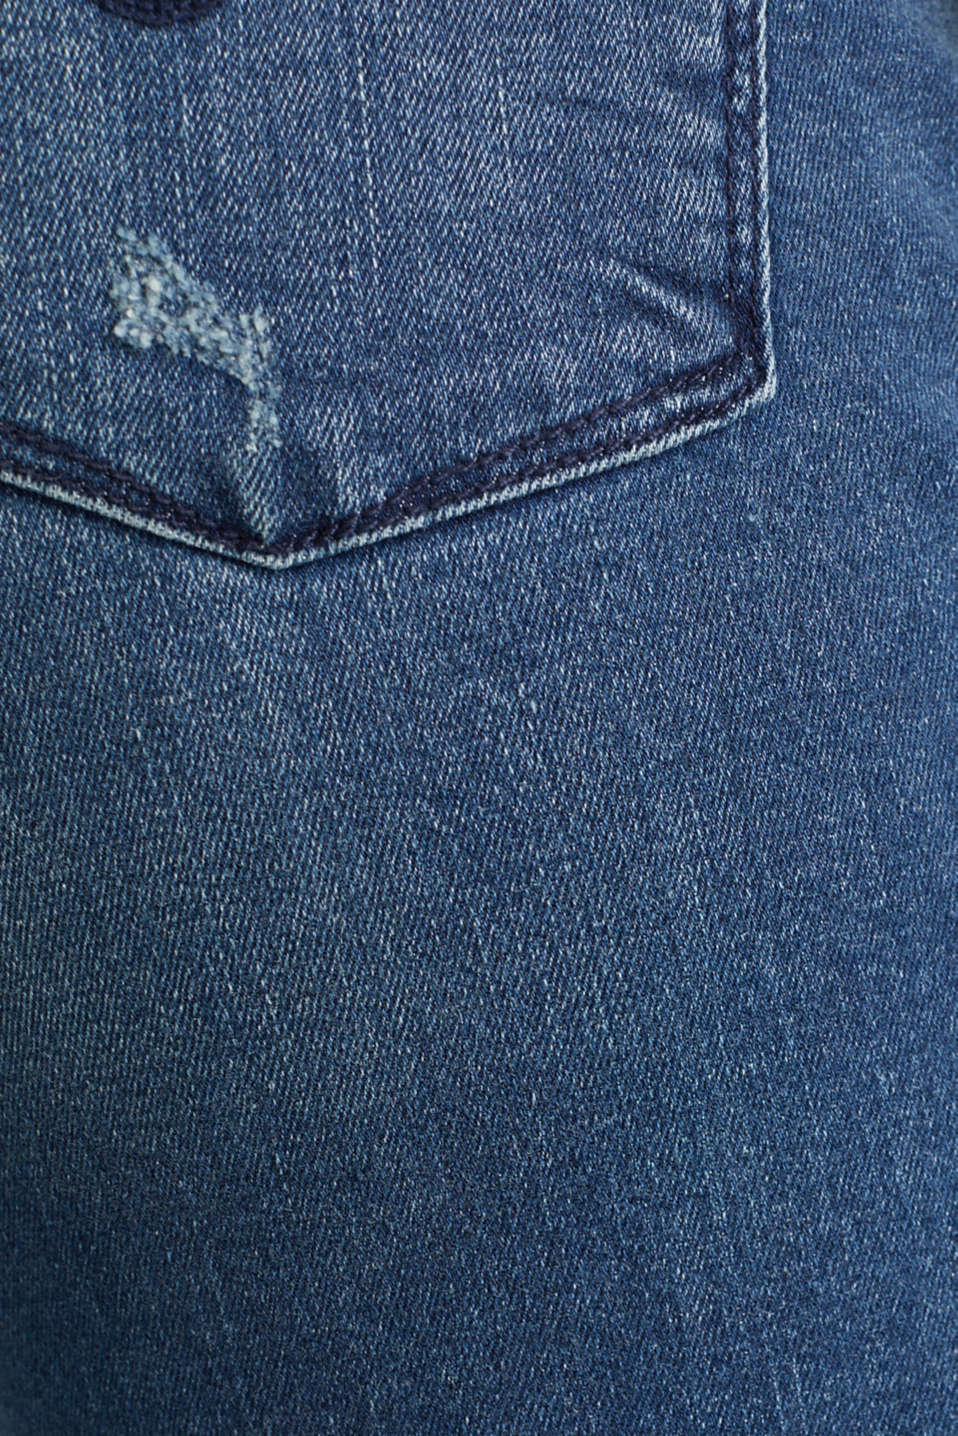 Jeans with vintage details, BLUE MEDIUM WASH, detail image number 4